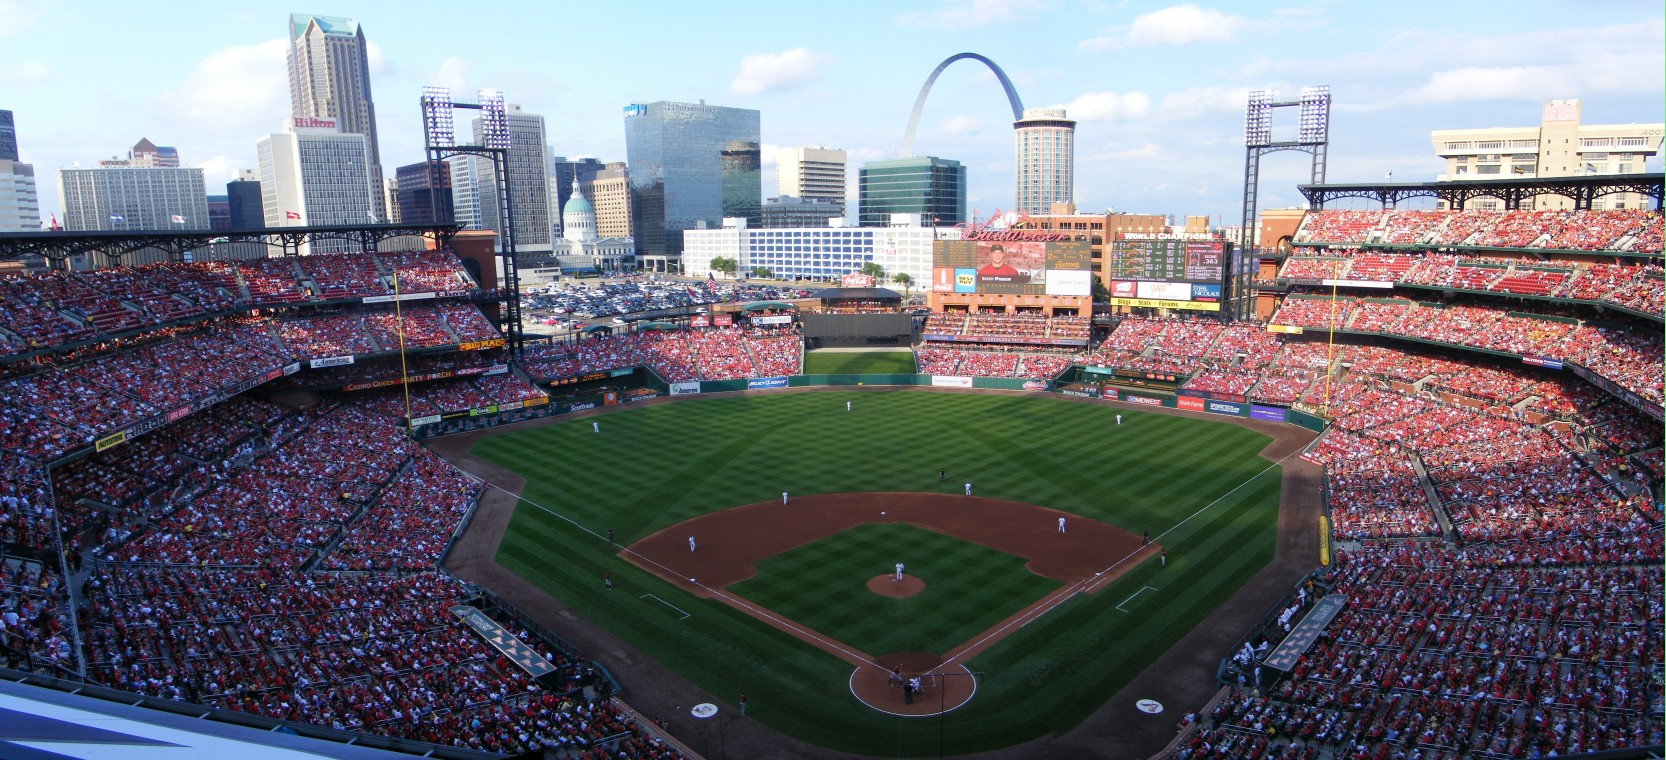 View from the Terrace Level Seats at Busch Stadium